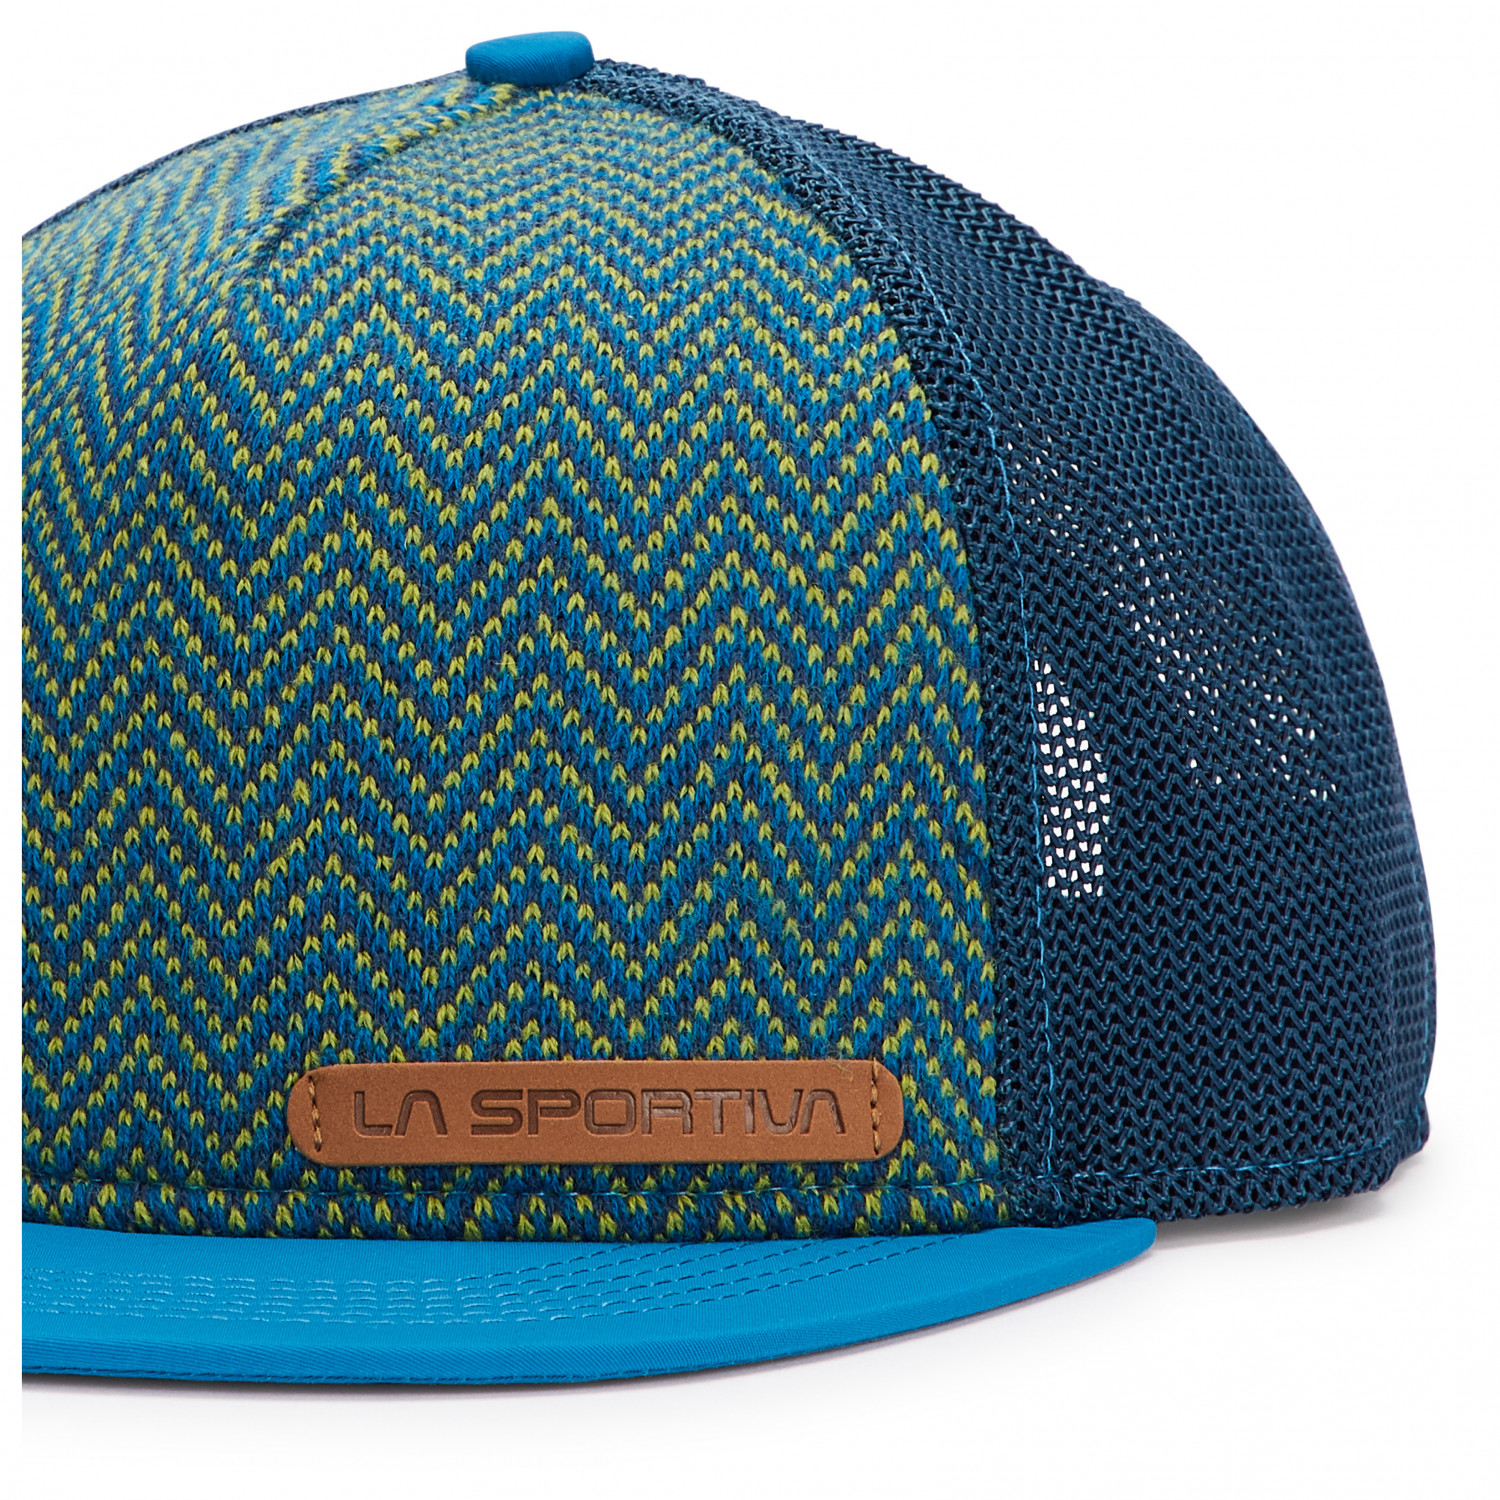 77cc73022 La Sportiva - Moose Trucker Hat - Cap - Cloud / Emerald | L